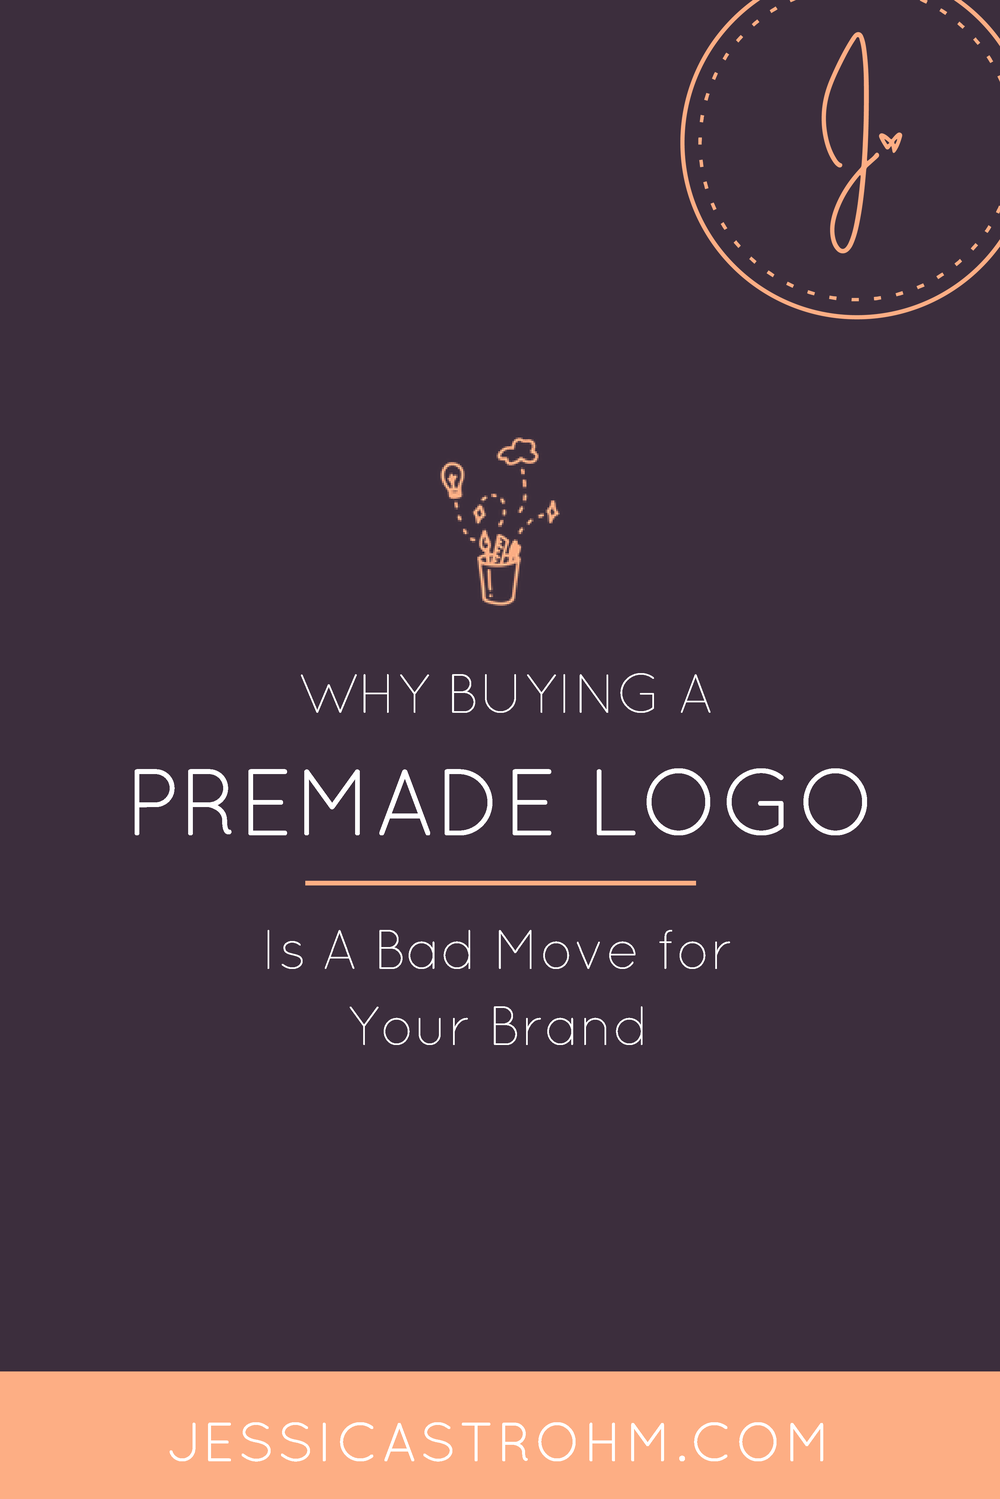 Is it bad to buy a premade logo for your business?